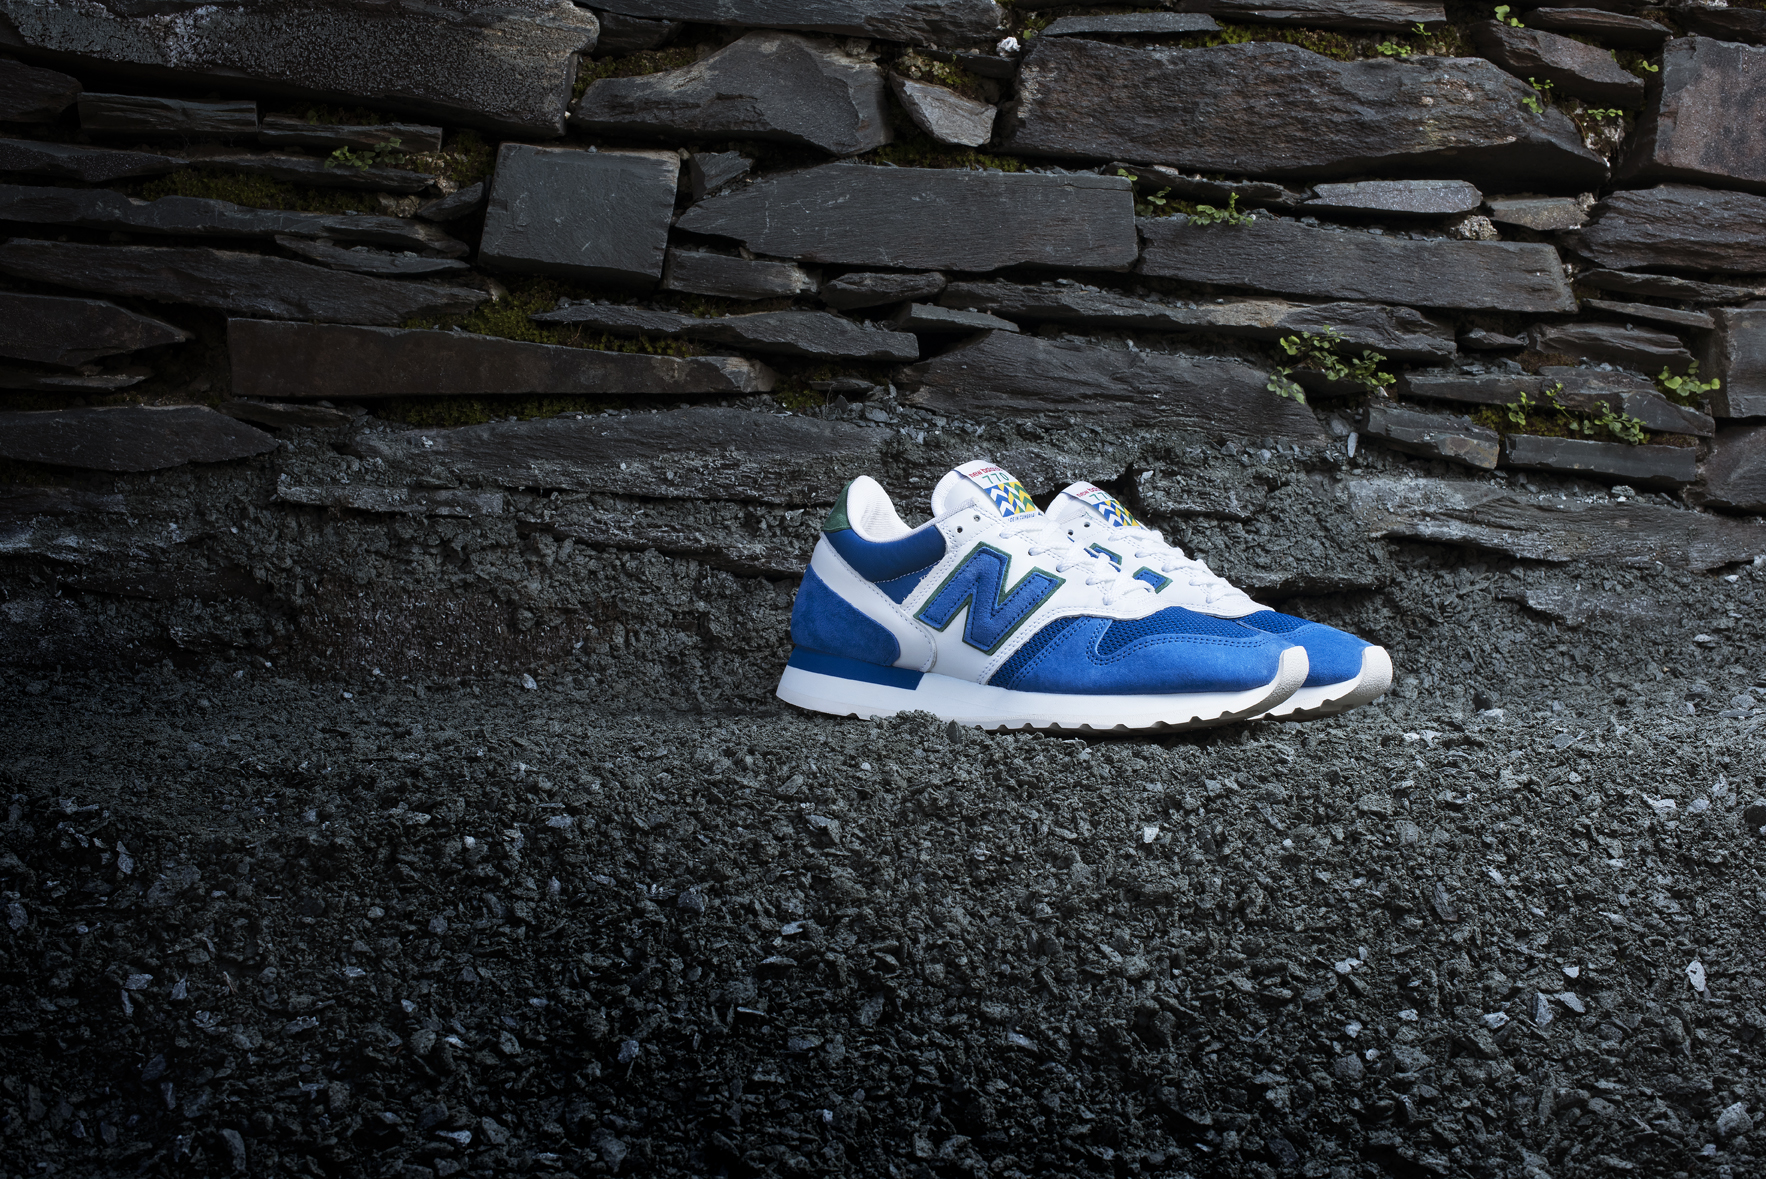 NB-miukCumbrianFlag-packs-03